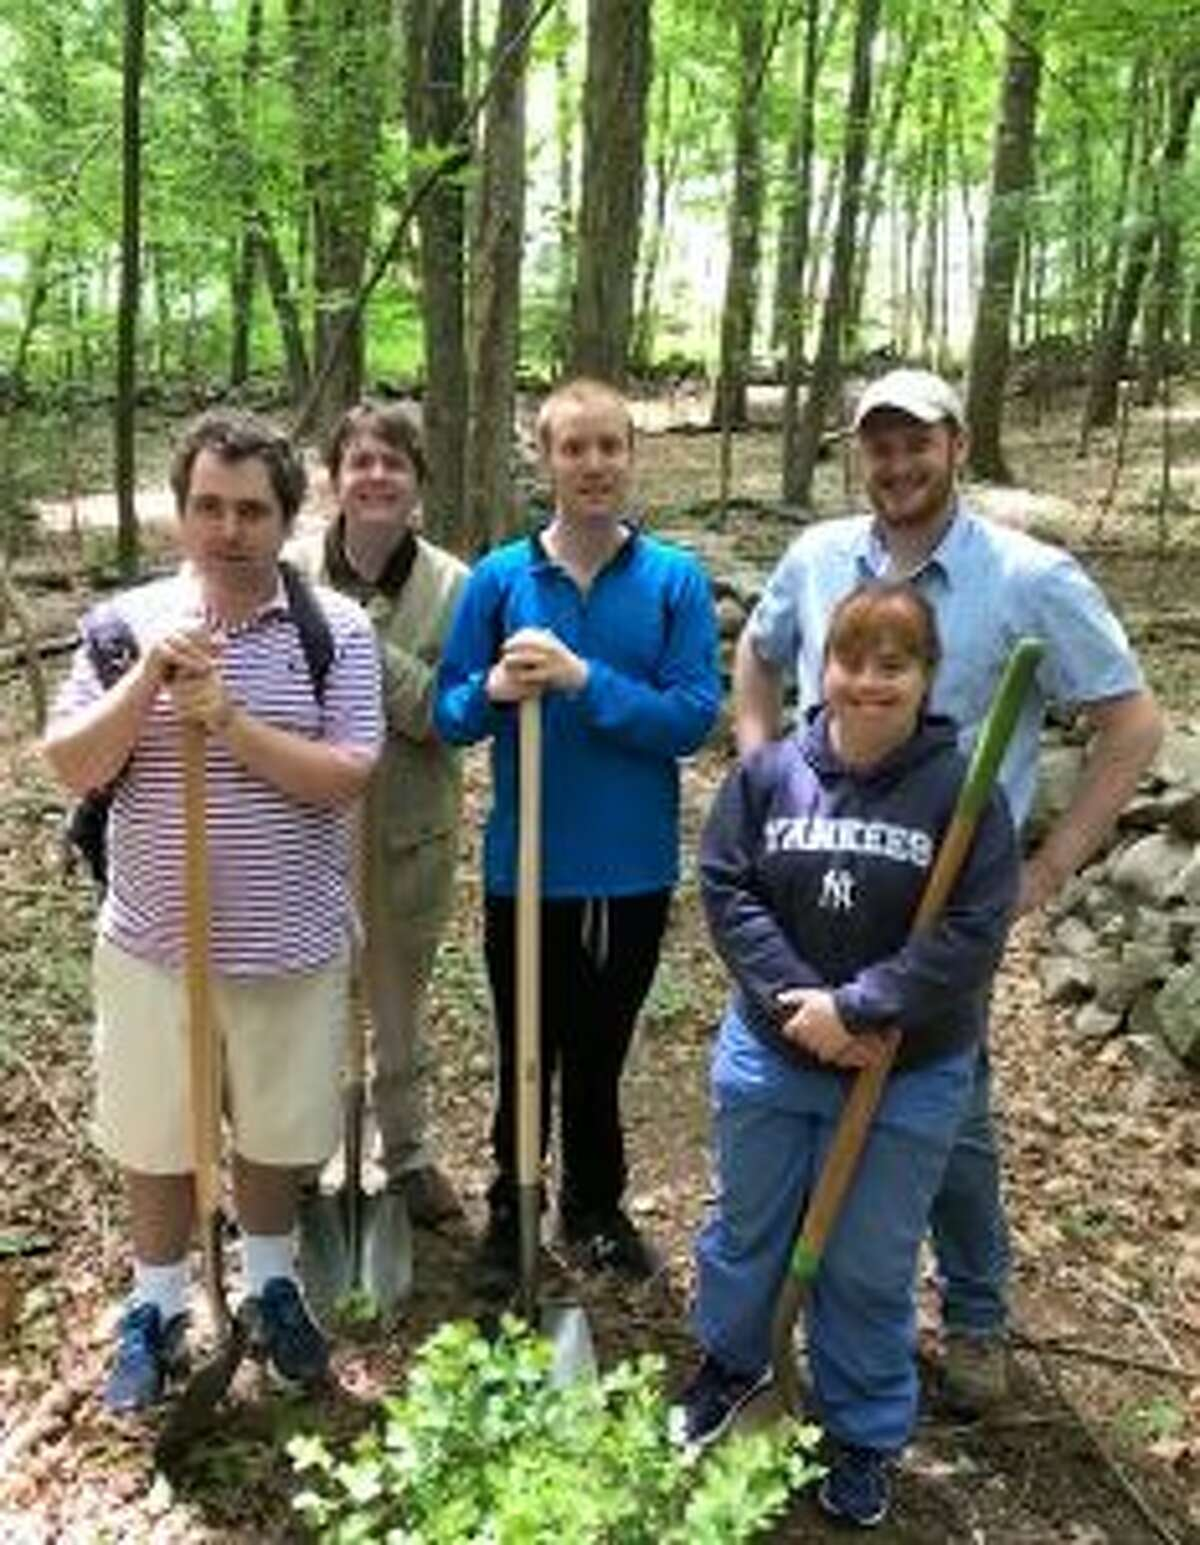 The New Canaan Land Trust, and a STAR partner is going to protect open space. STAR clients, from left, Nick Evarts, Todd McInerney, Bjorn Swarting; Aaron Lefland, executive director, New Canaan Land Trust and client Nicki Dubiago. - Contributed photo